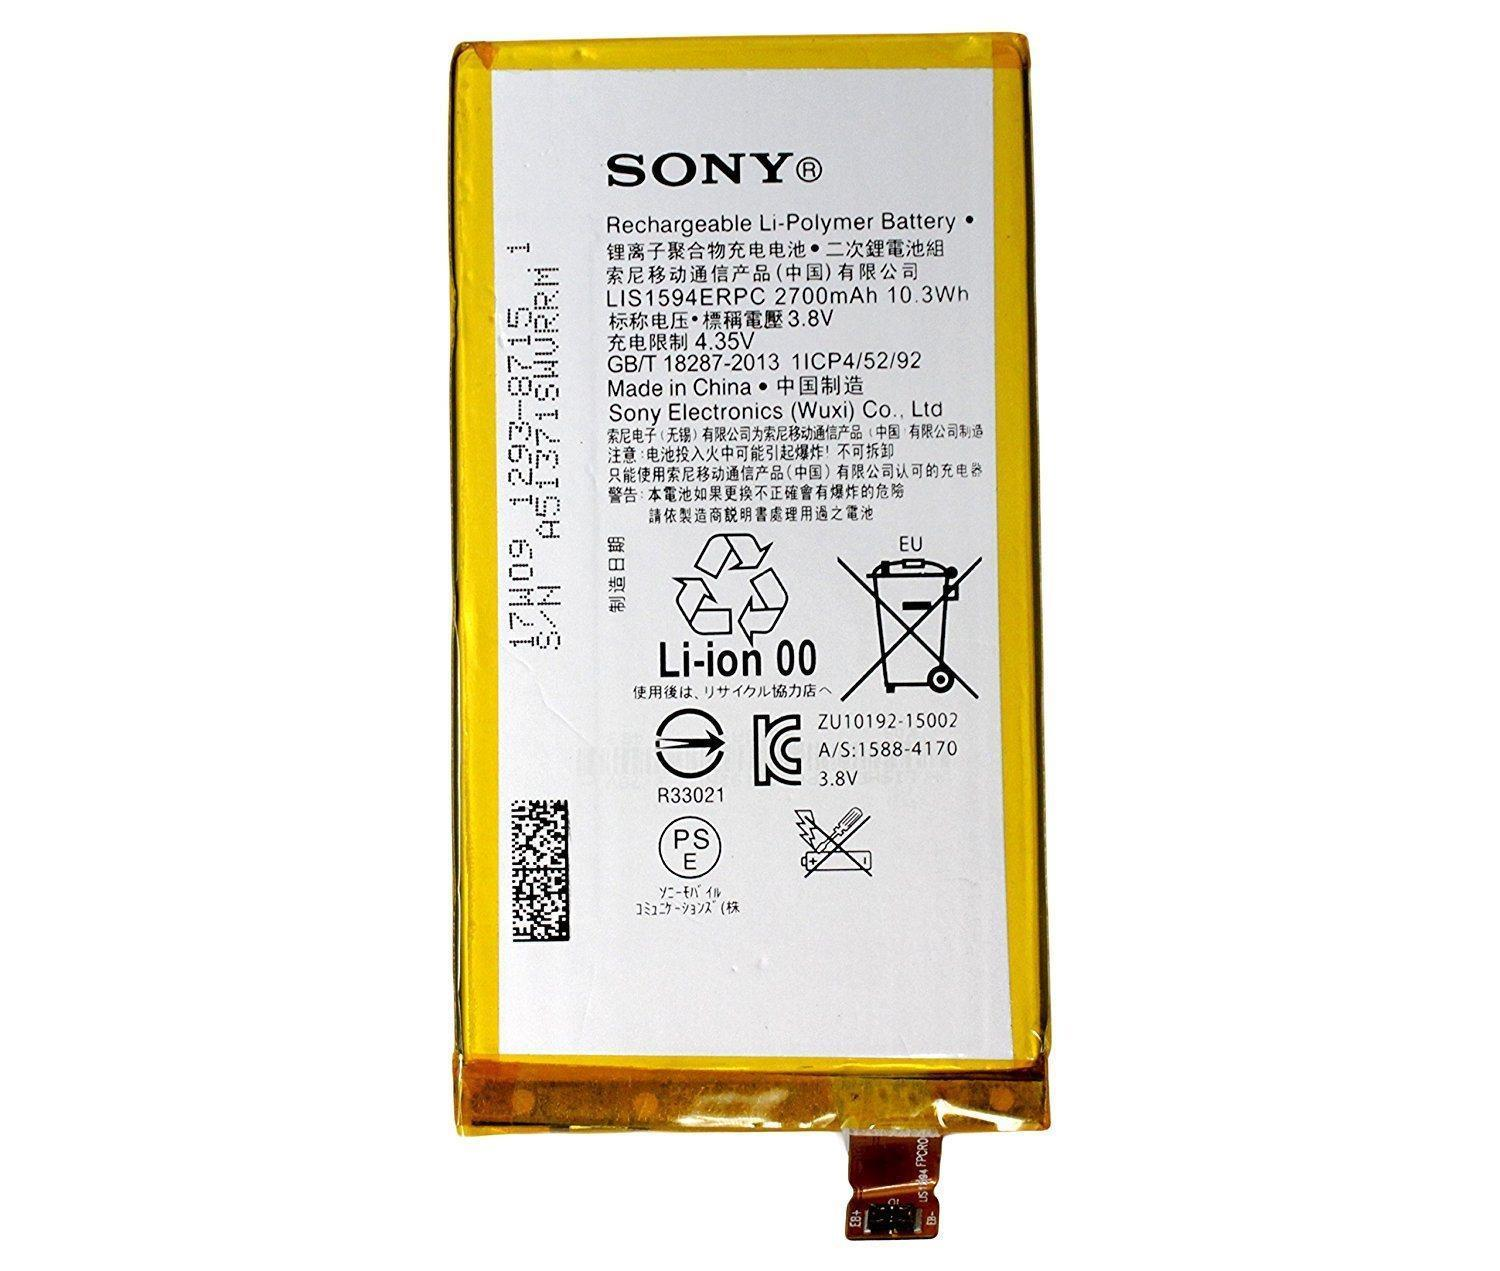 Sony : Discount batteries - Sony battery - BatteryAdapter.com.au